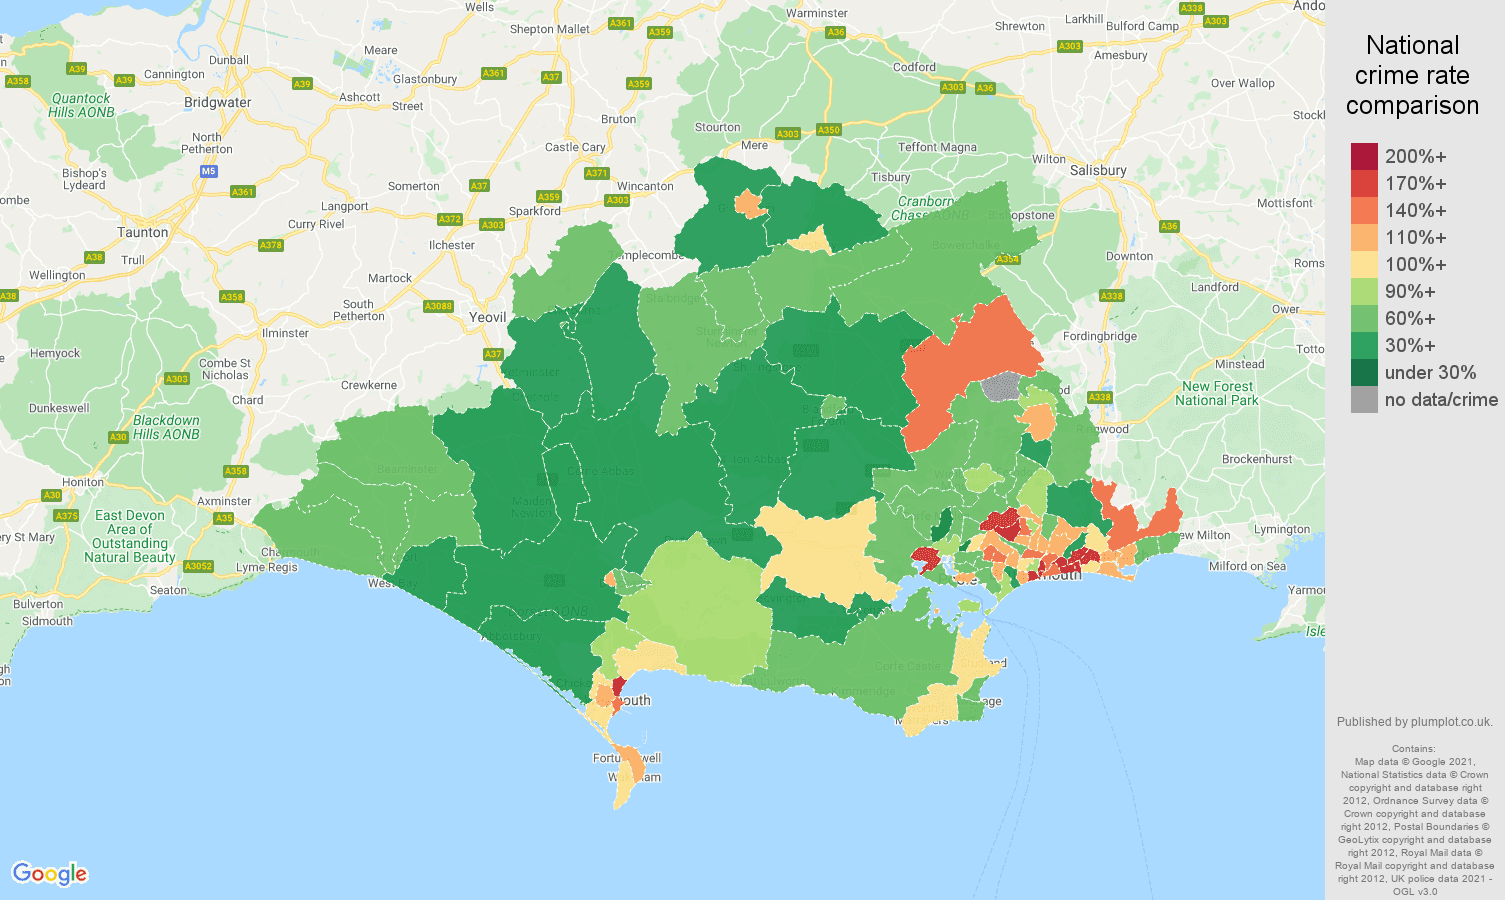 Dorset criminal damage and arson crime rate comparison map